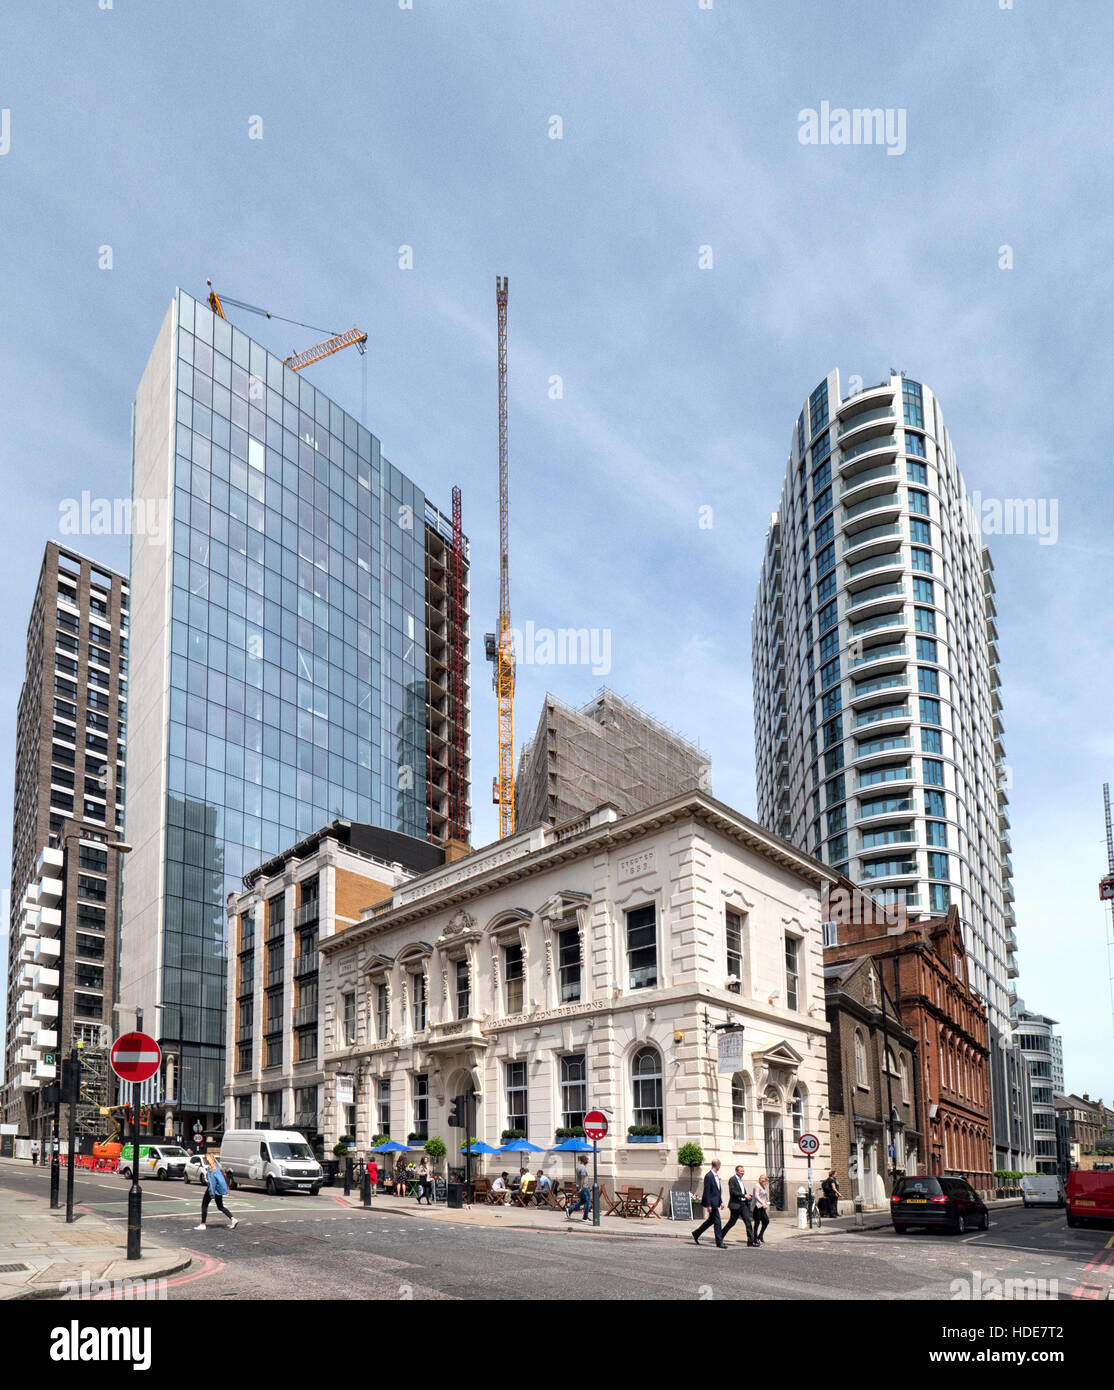 The Eastman Dispensary building dwarfed by towering new buildings in and around Leman Street in Whitechapel East - Stock Image